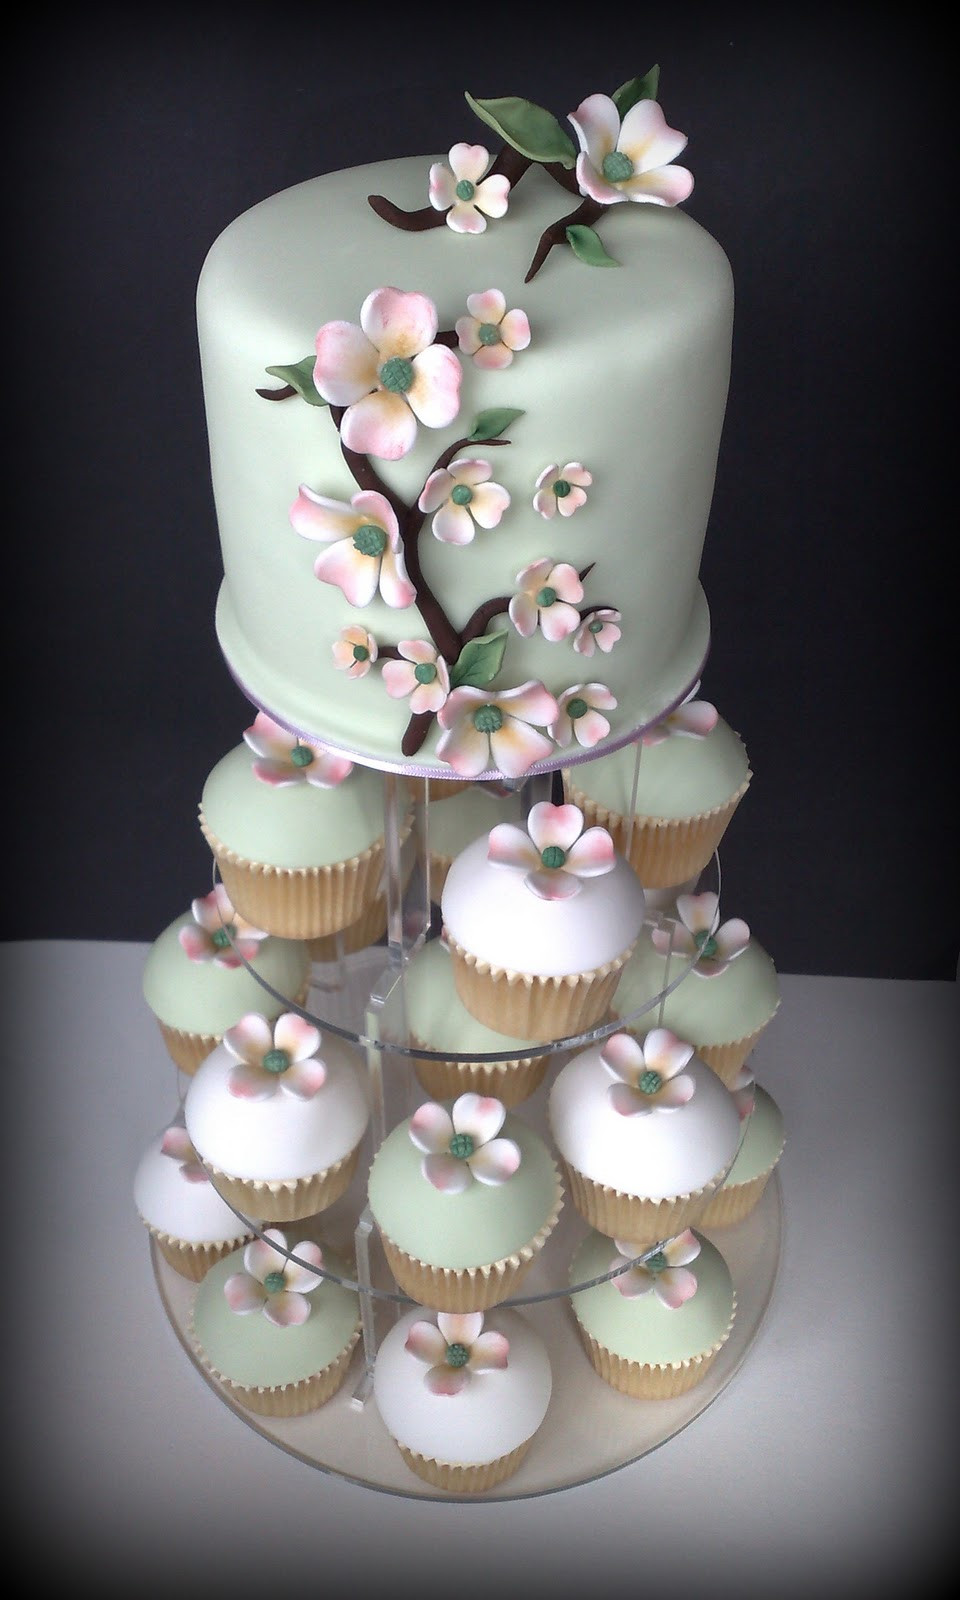 Wedding Cakes And Cupcakes  Small Things Iced Dogwood Wedding Cupcakes & Cutting Cake